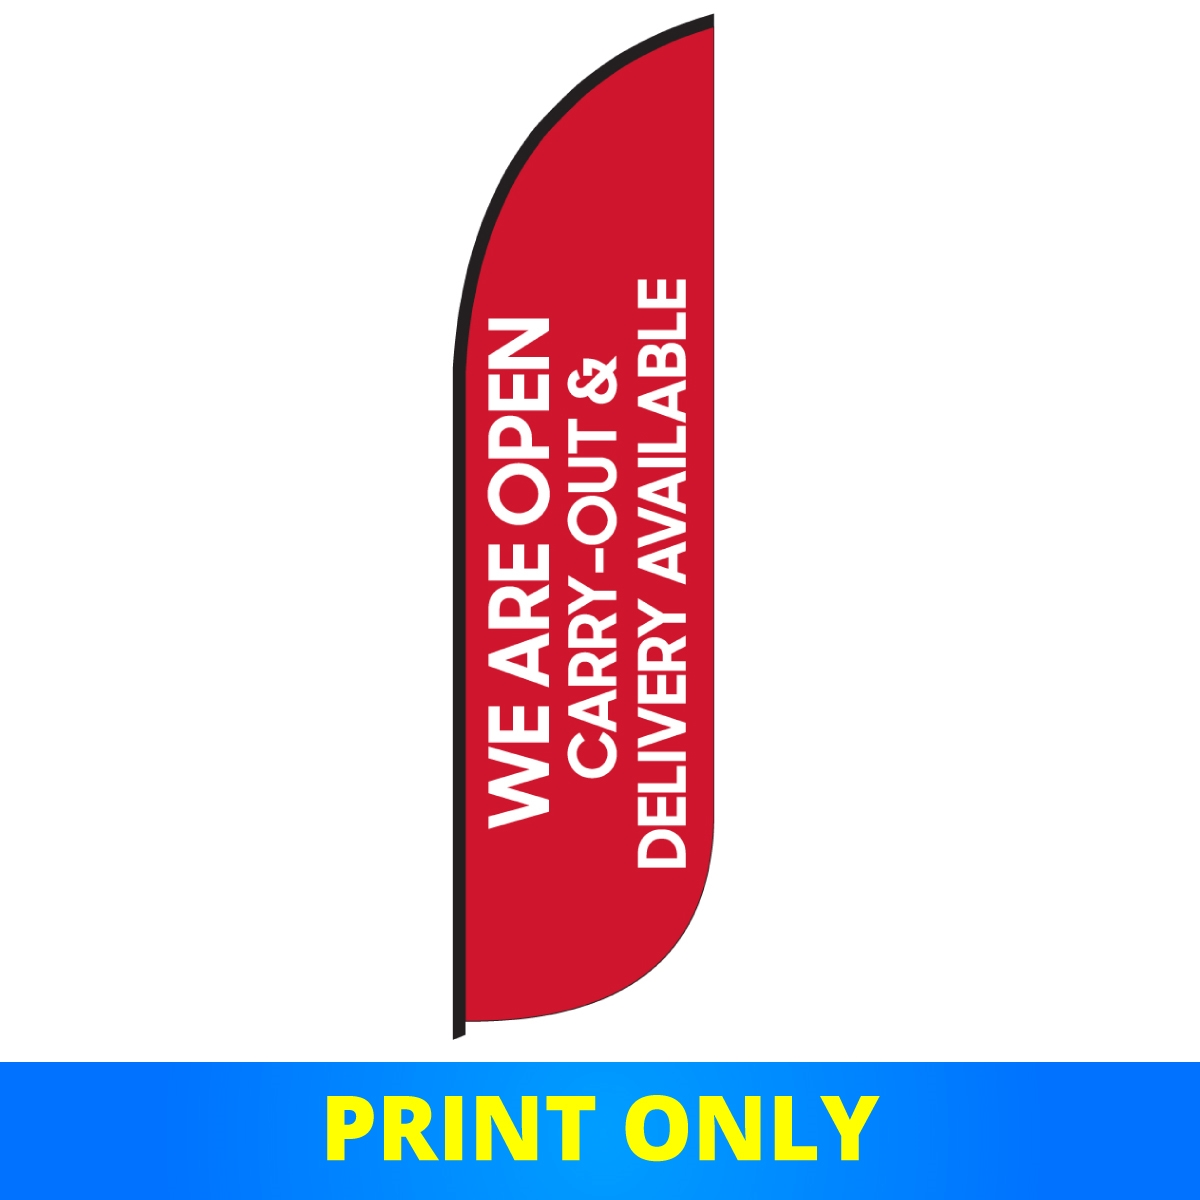 We Are Open - Carry-Out & Delivery Available | 8.5' Stock Single-Sided Flag (PRINT ONLY)